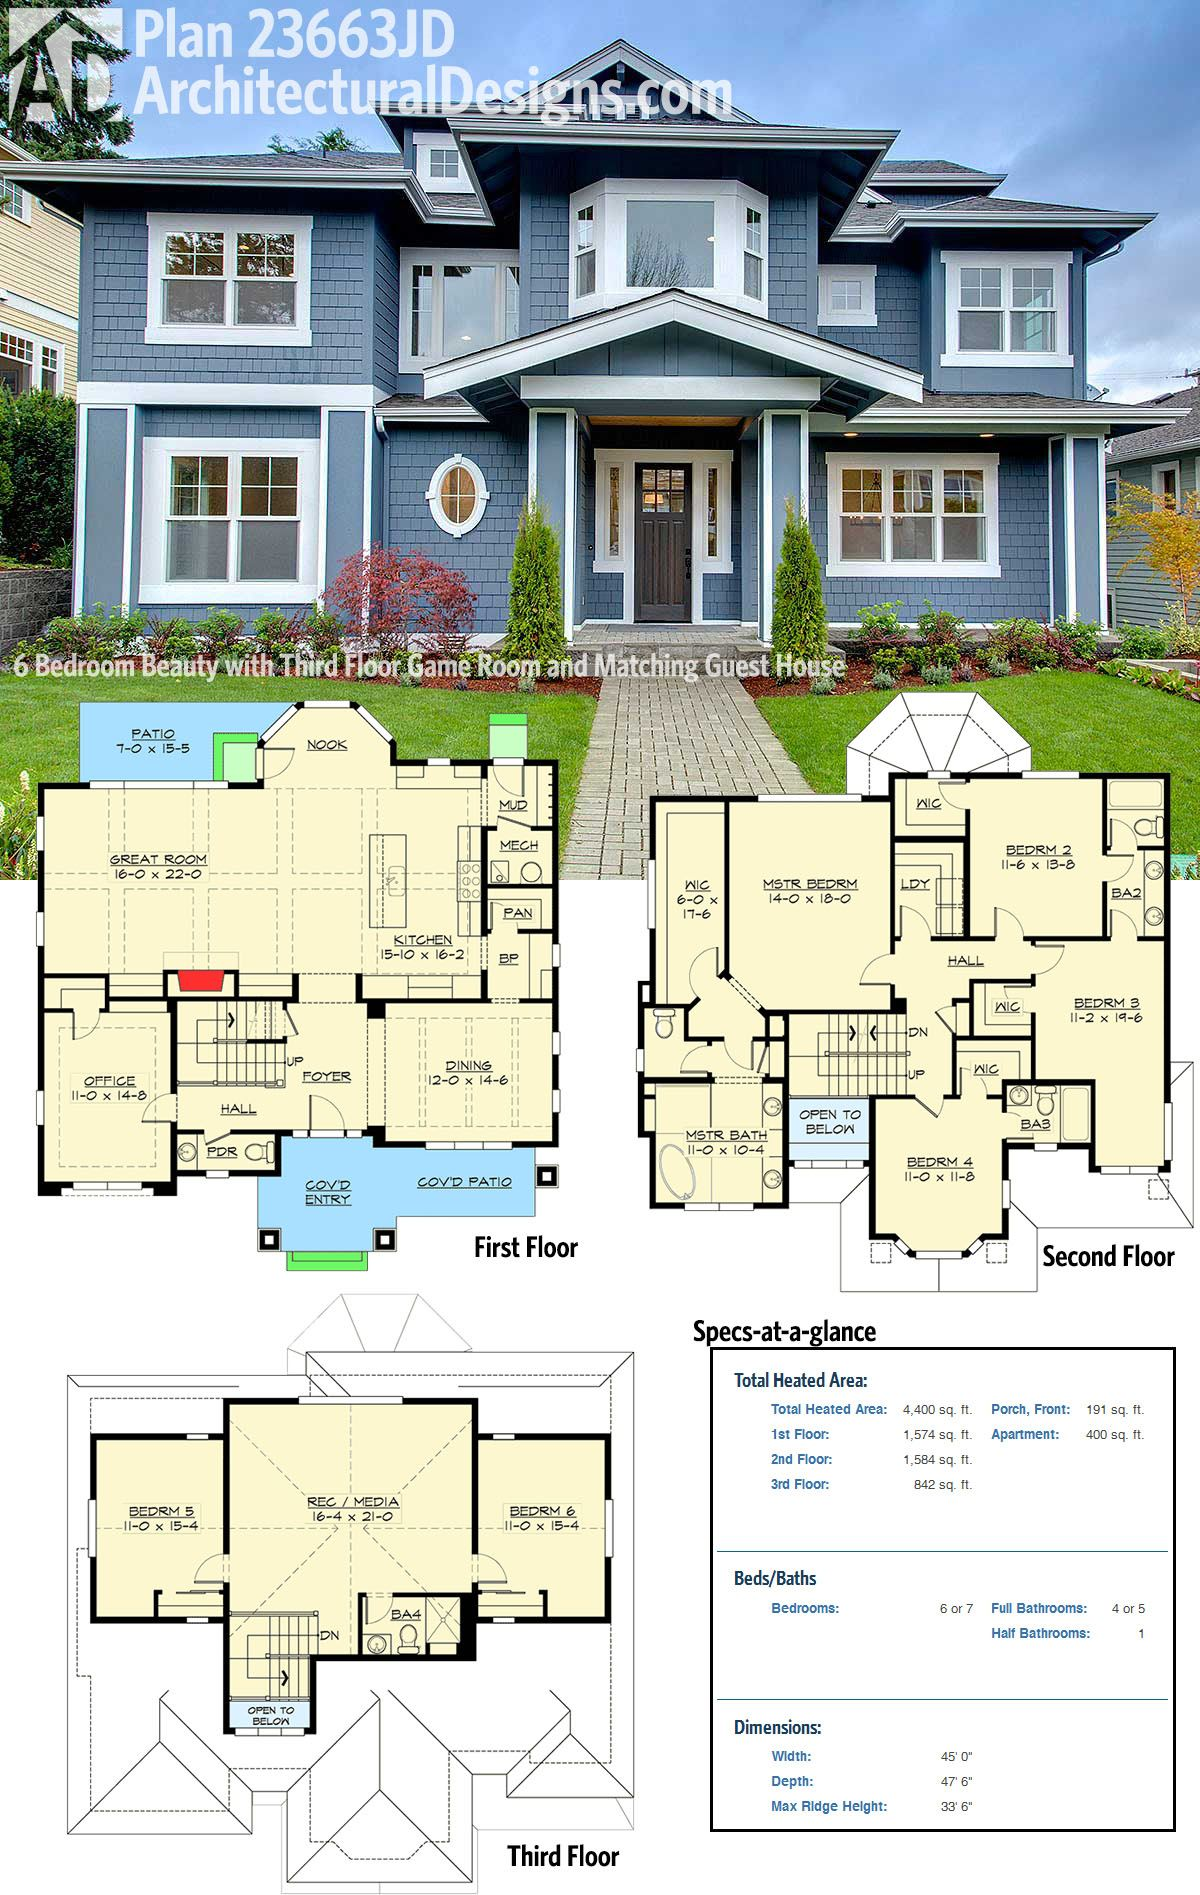 Plan 23663jd 6 bedroom beauty with third floor game room for 6 bed house